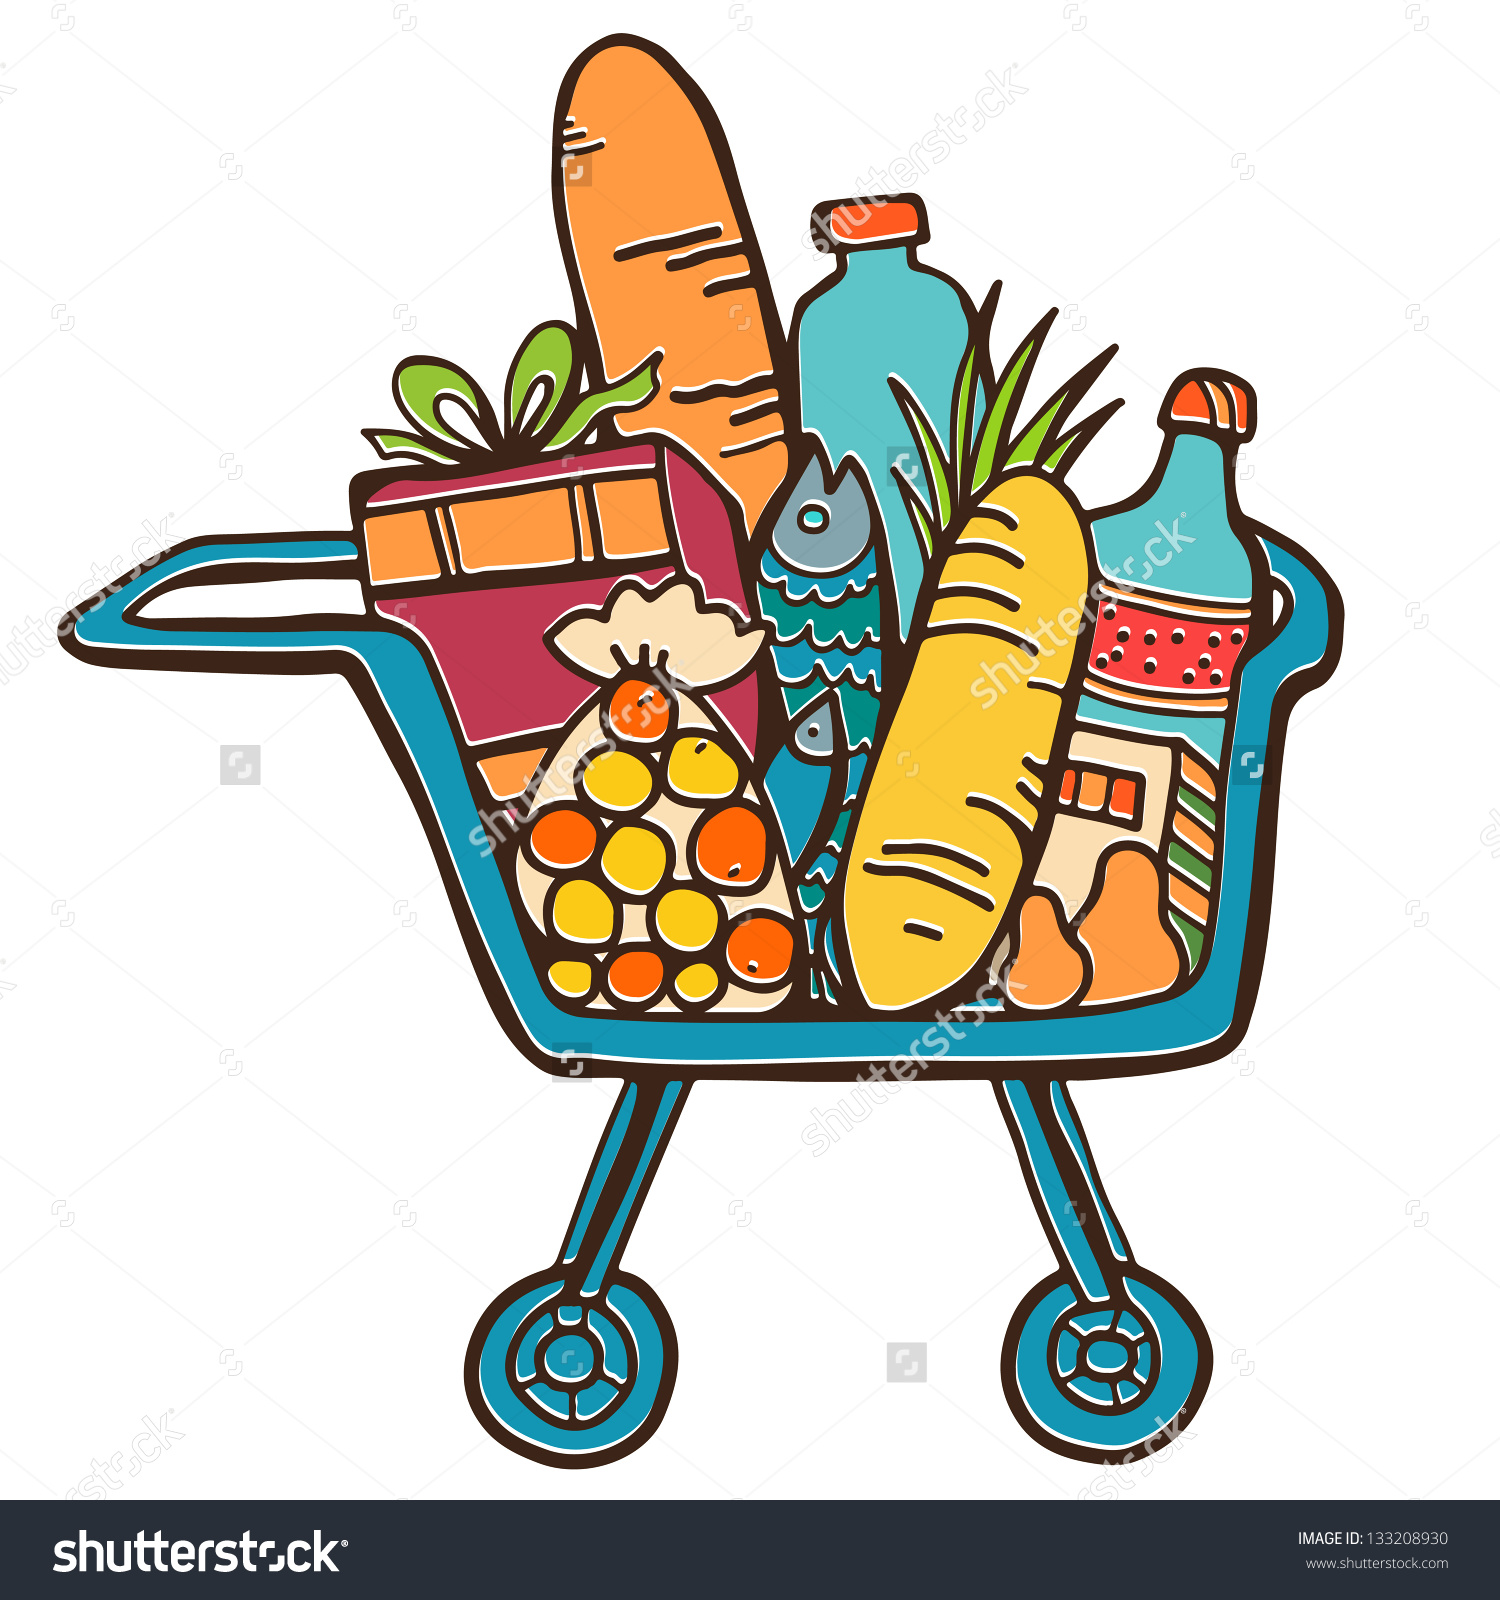 Shopping for food clipart.